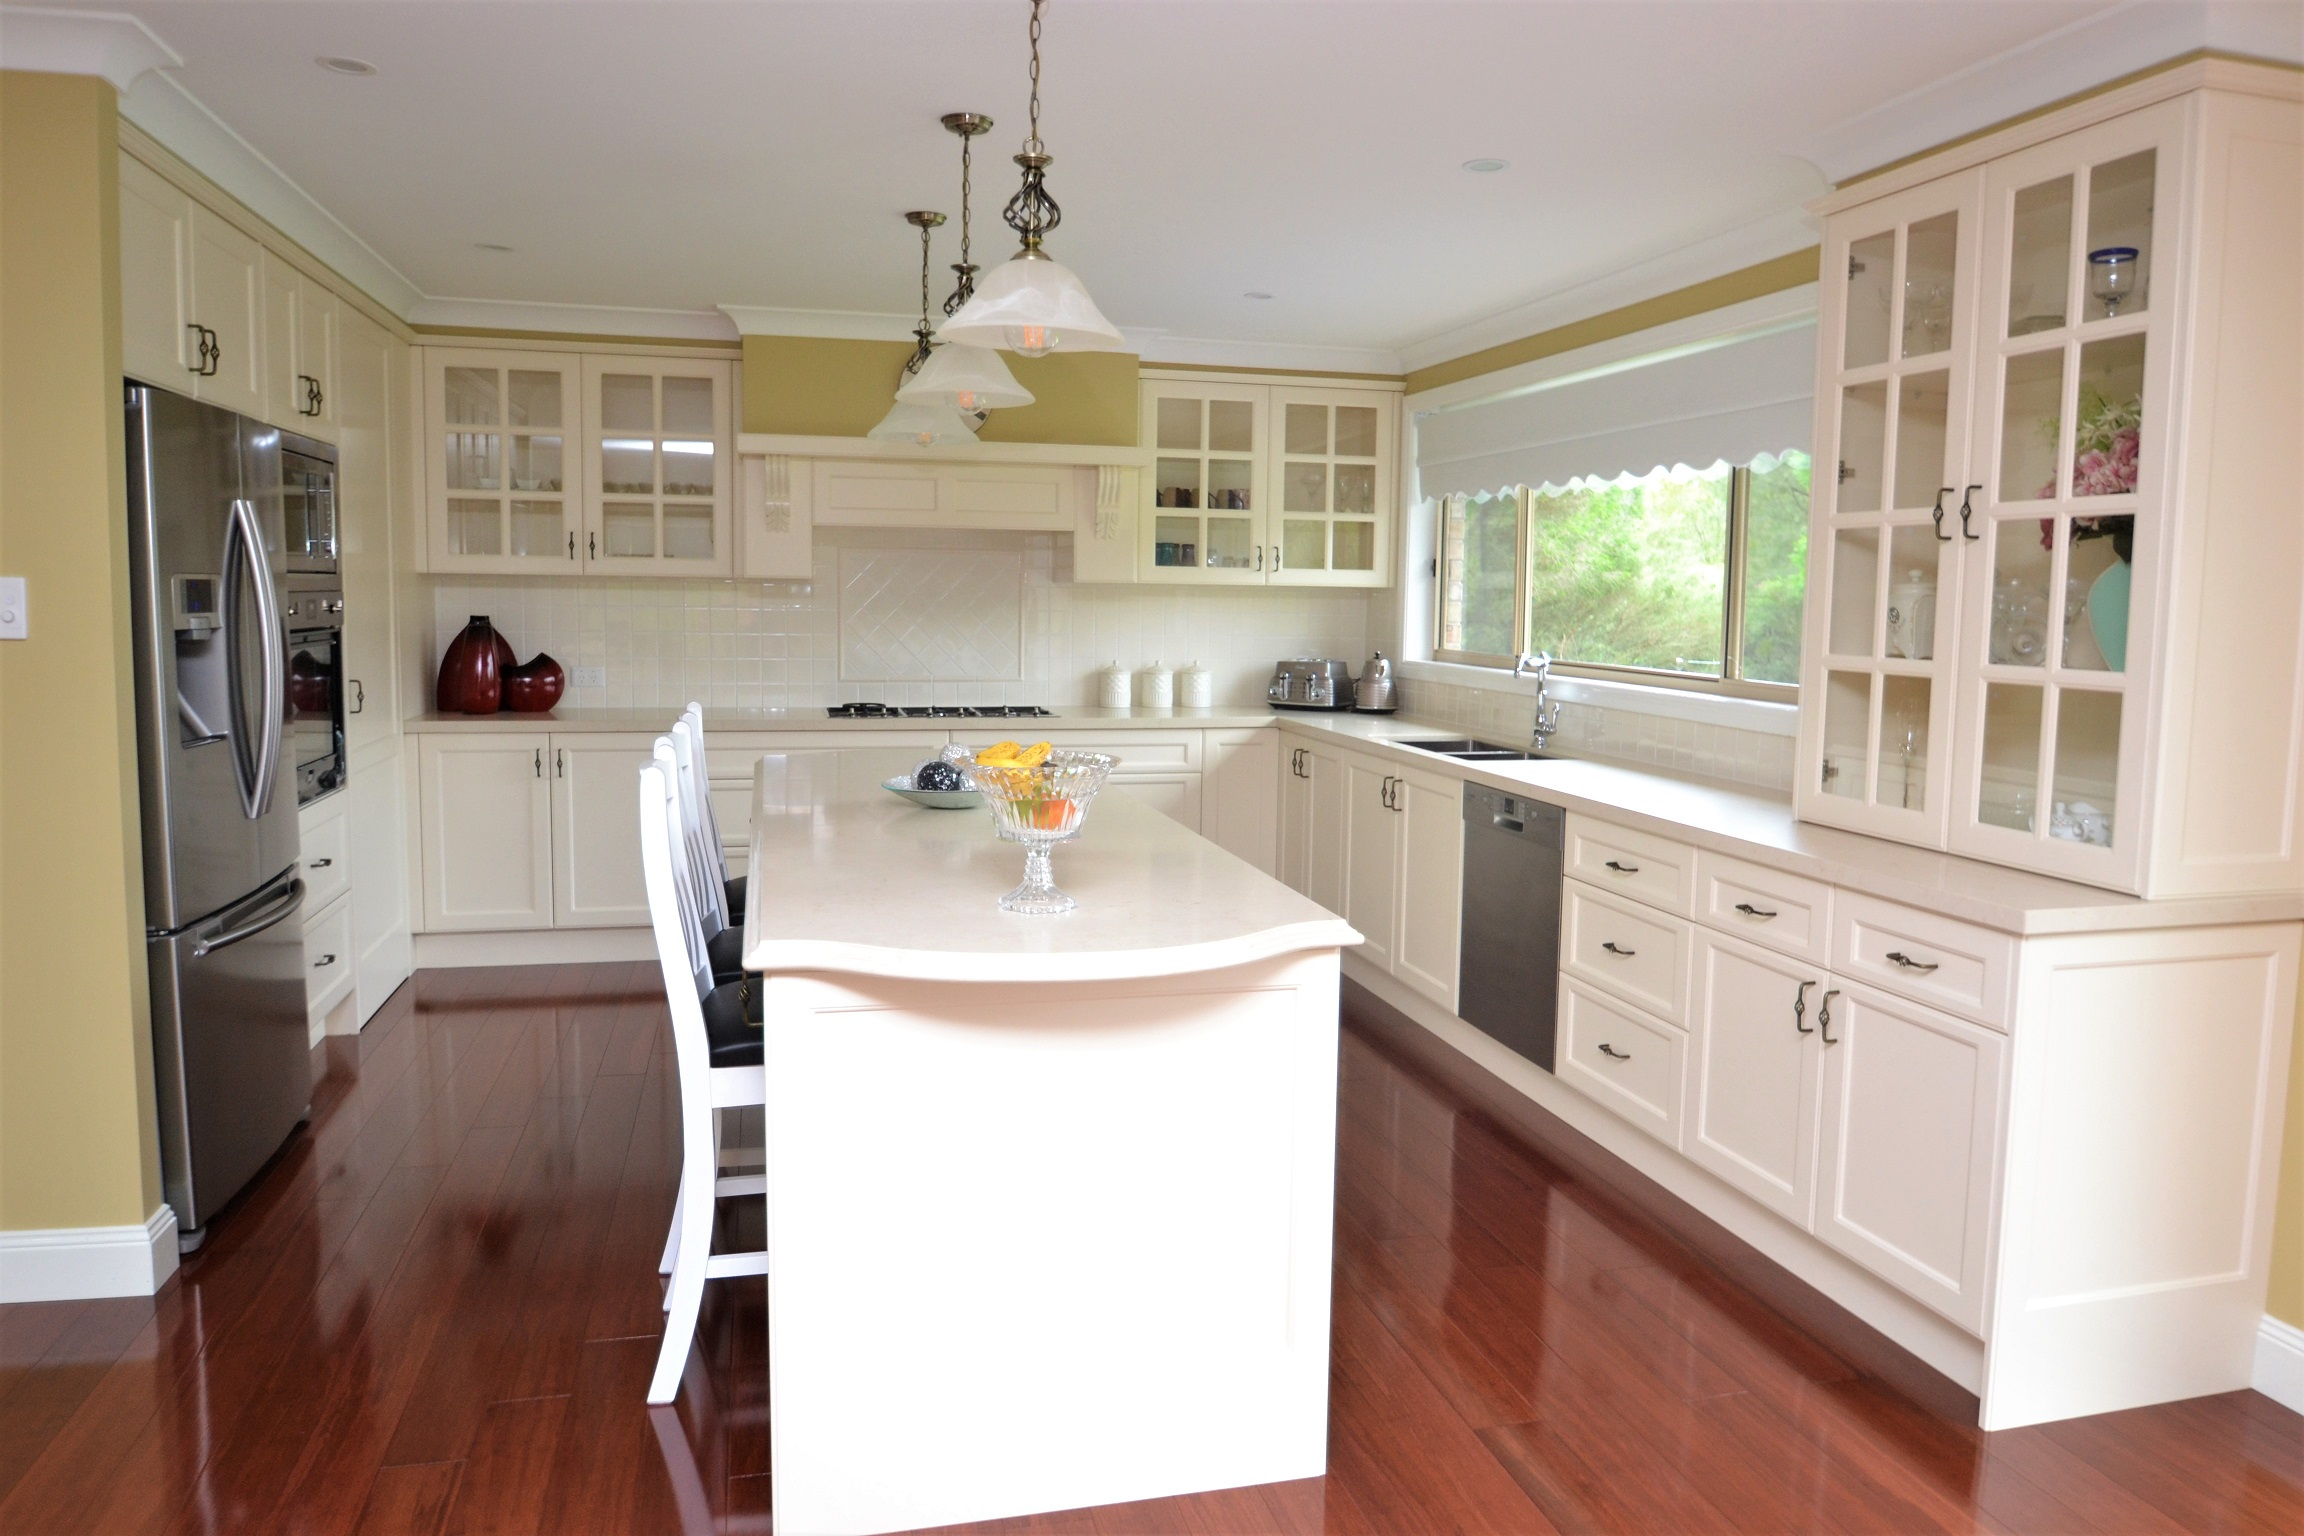 French Provincial Kitchen Island Traditional French Provincial Kitchens Cdk